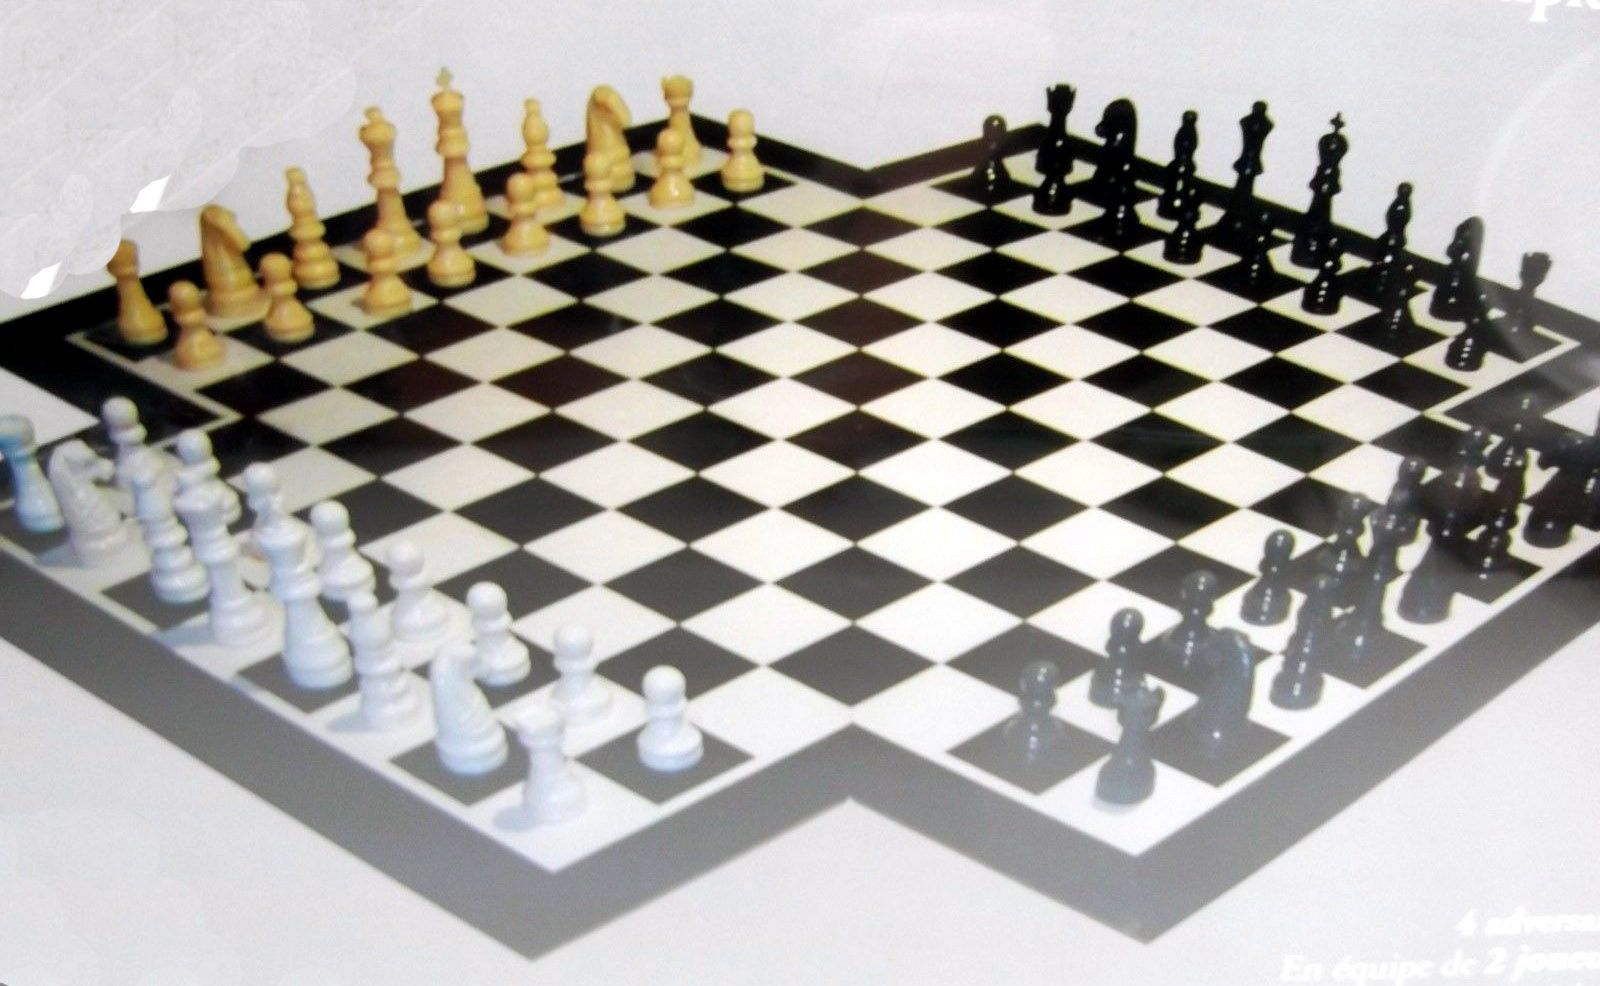 4player chess 3 4 player chess chess board logic games